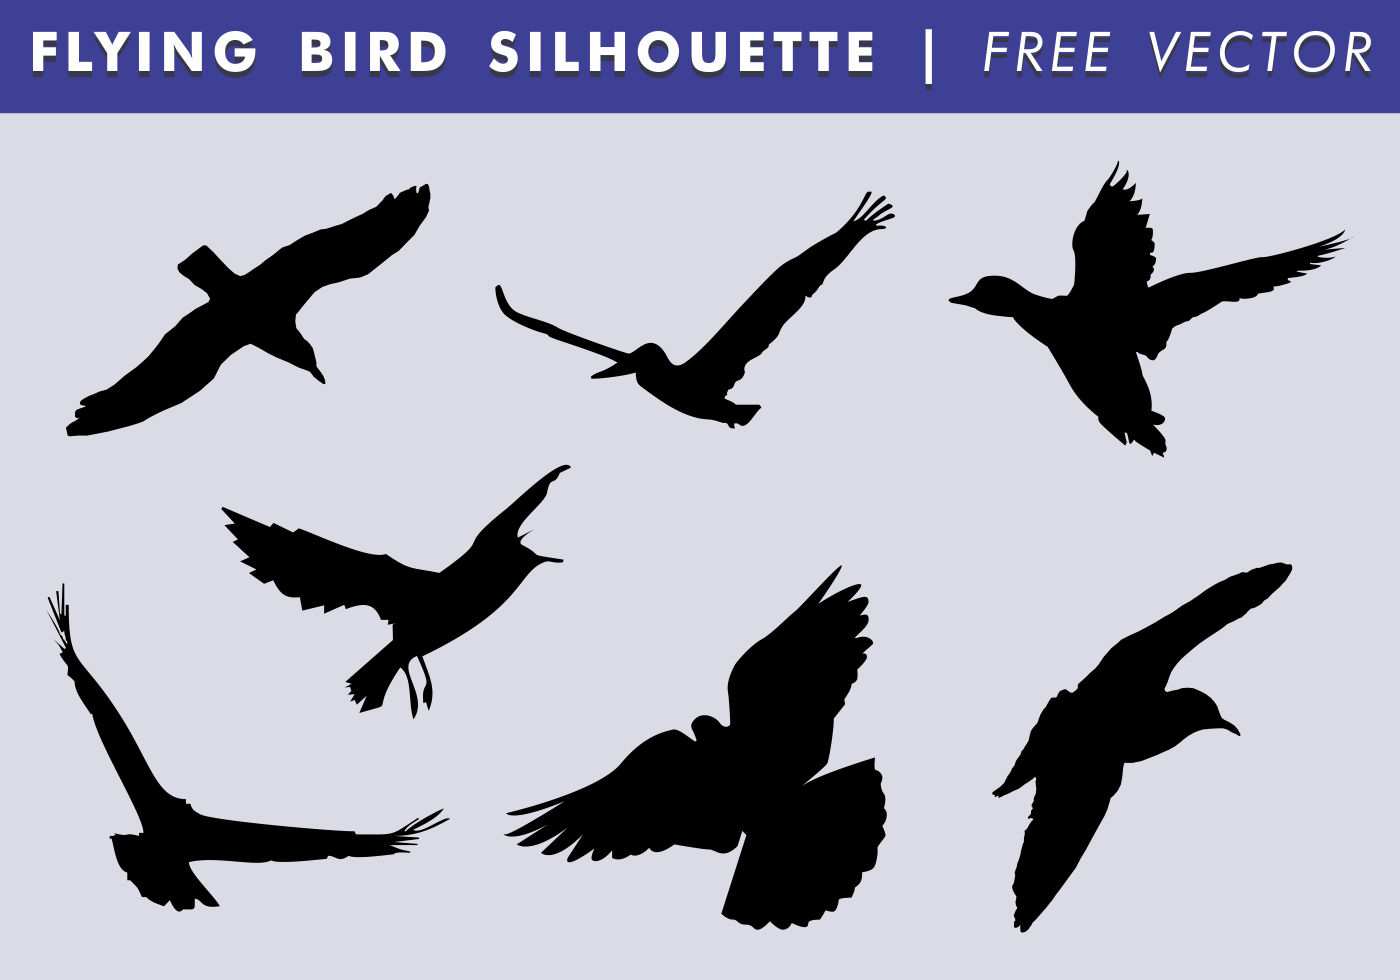 Flying Bird Silhouette Free Vector - Download Free Vector ... | 1400 x 980 png 115kB